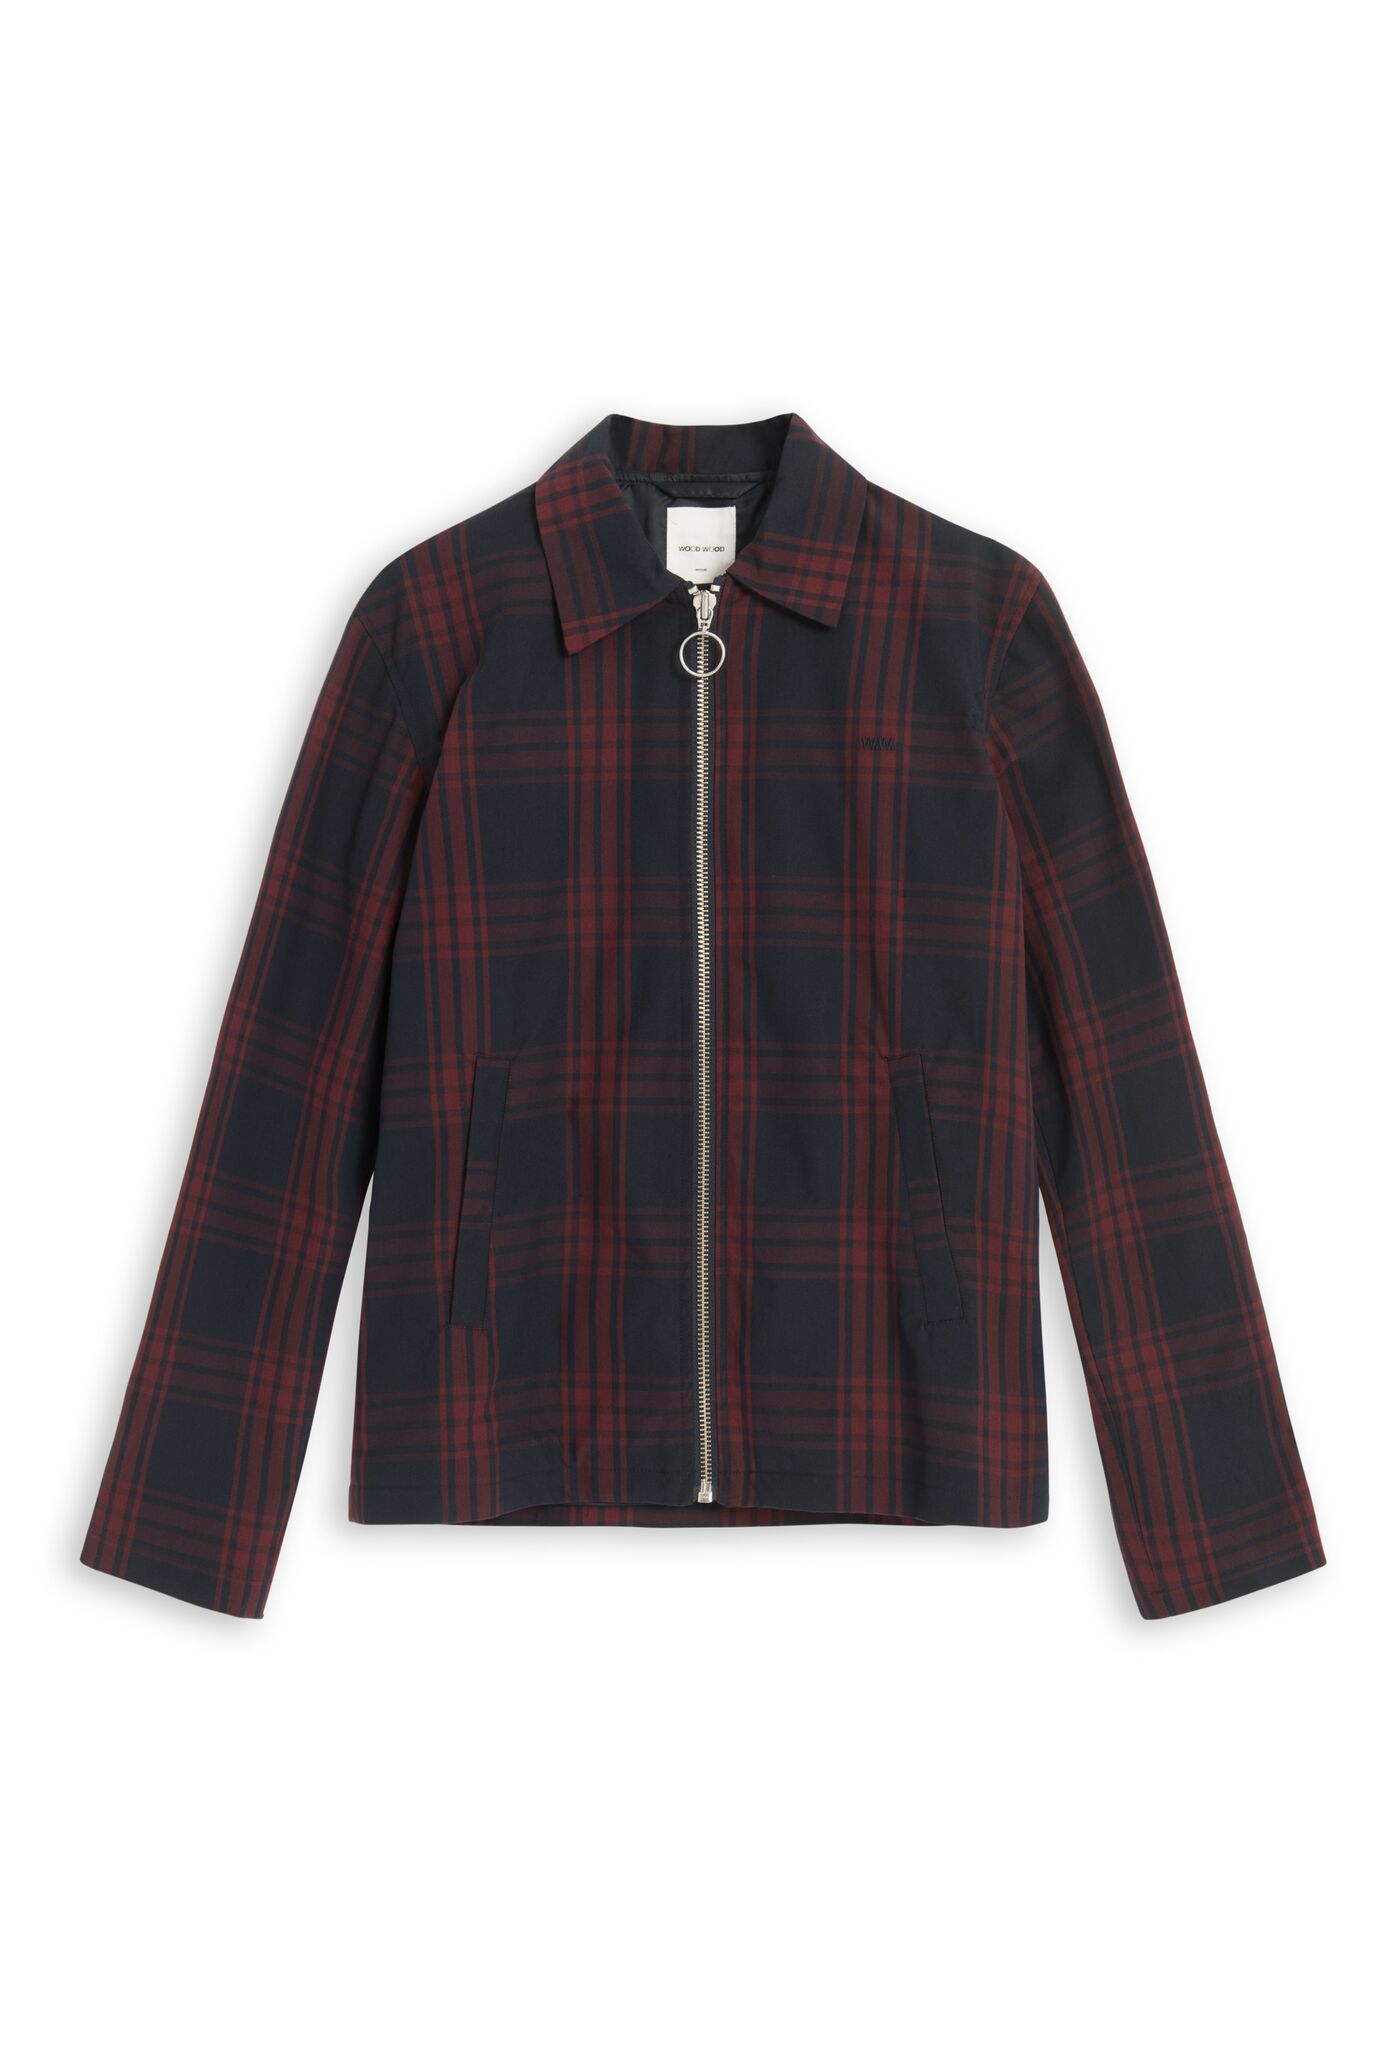 Corbyn Jacket Navy Check Jacket Wood Wood - der ZEITGEIST